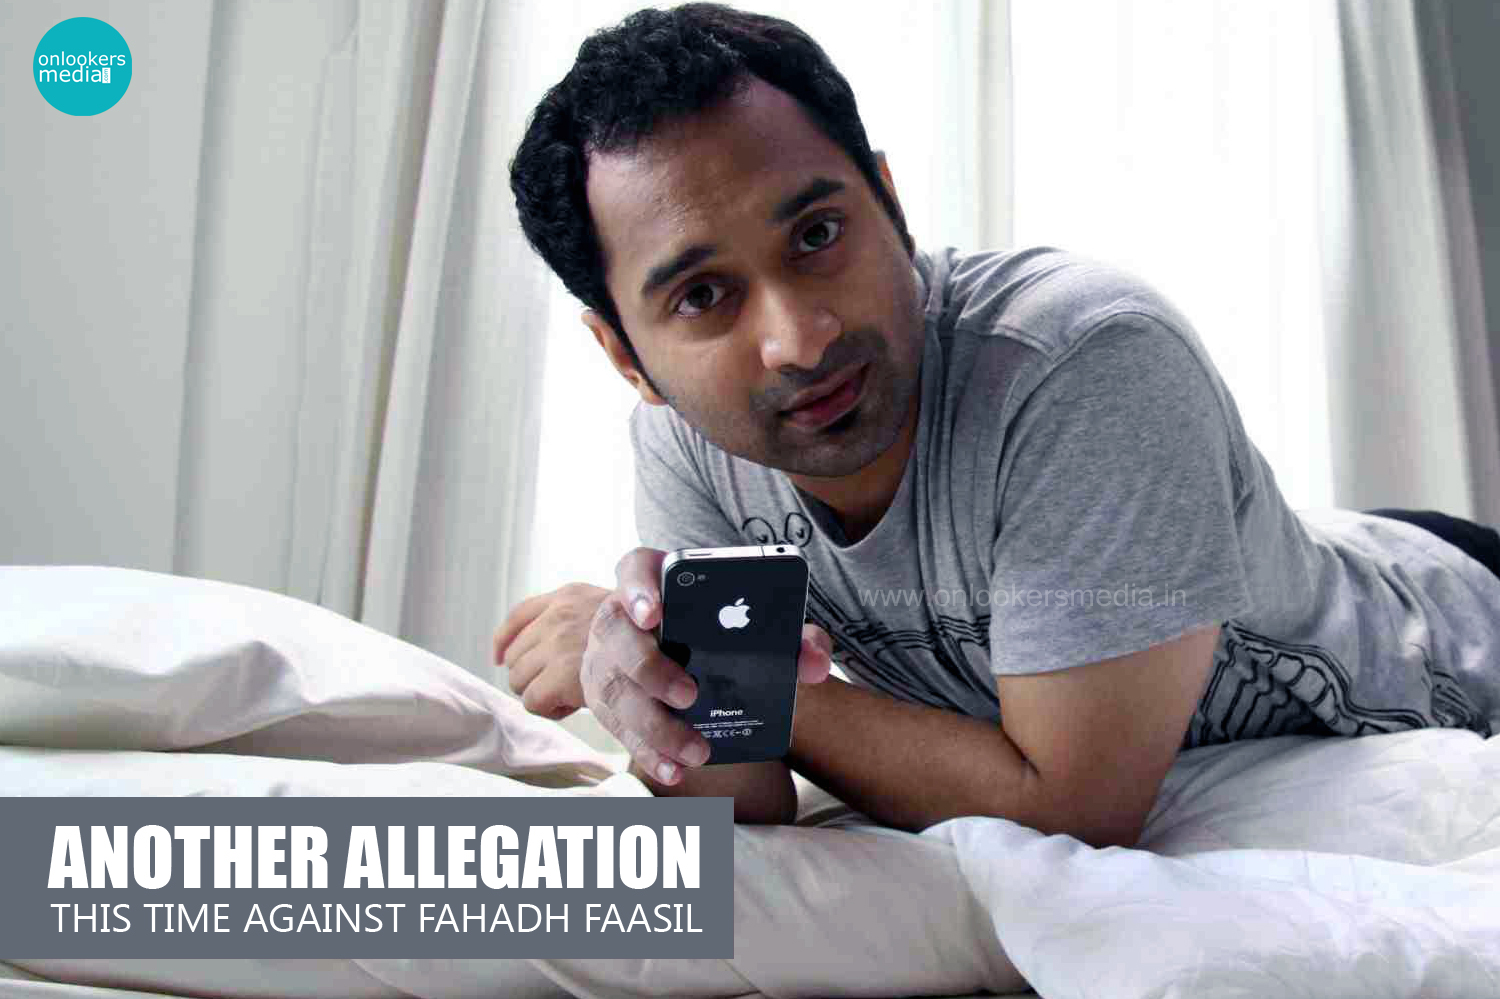 Another allegation, This time Against Fahadh Faasil-Iyer In Pakistan Issue-Onlookers Media